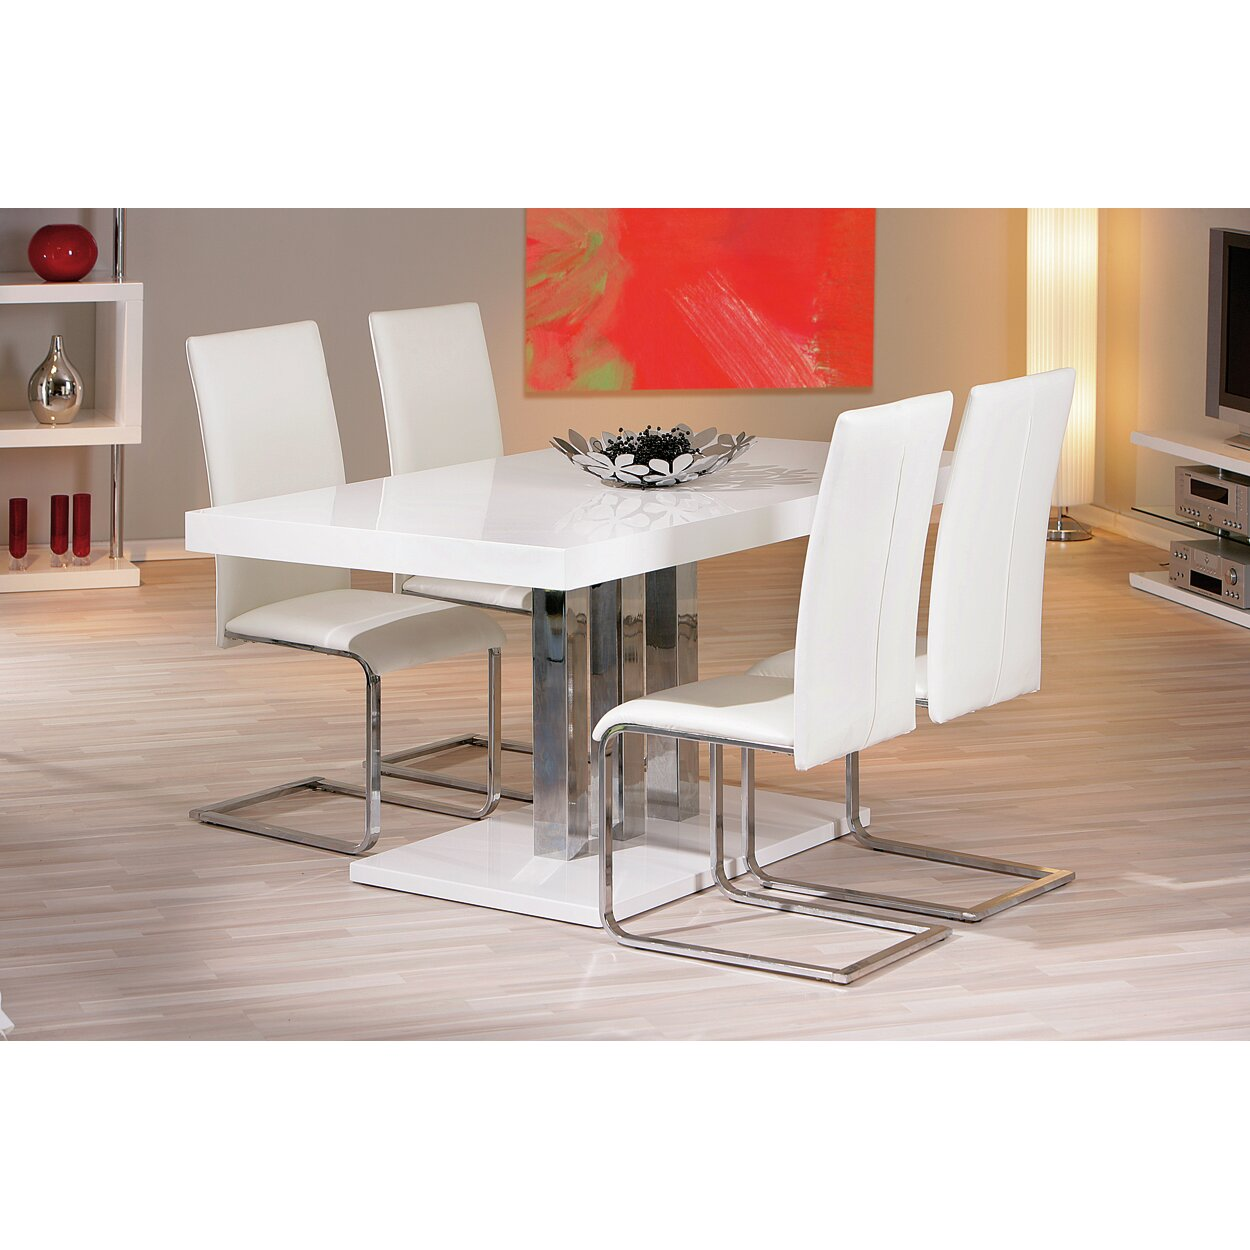 House additions palazzo dining table reviews wayfair uk for Table salle a manger laque blanc rallonge